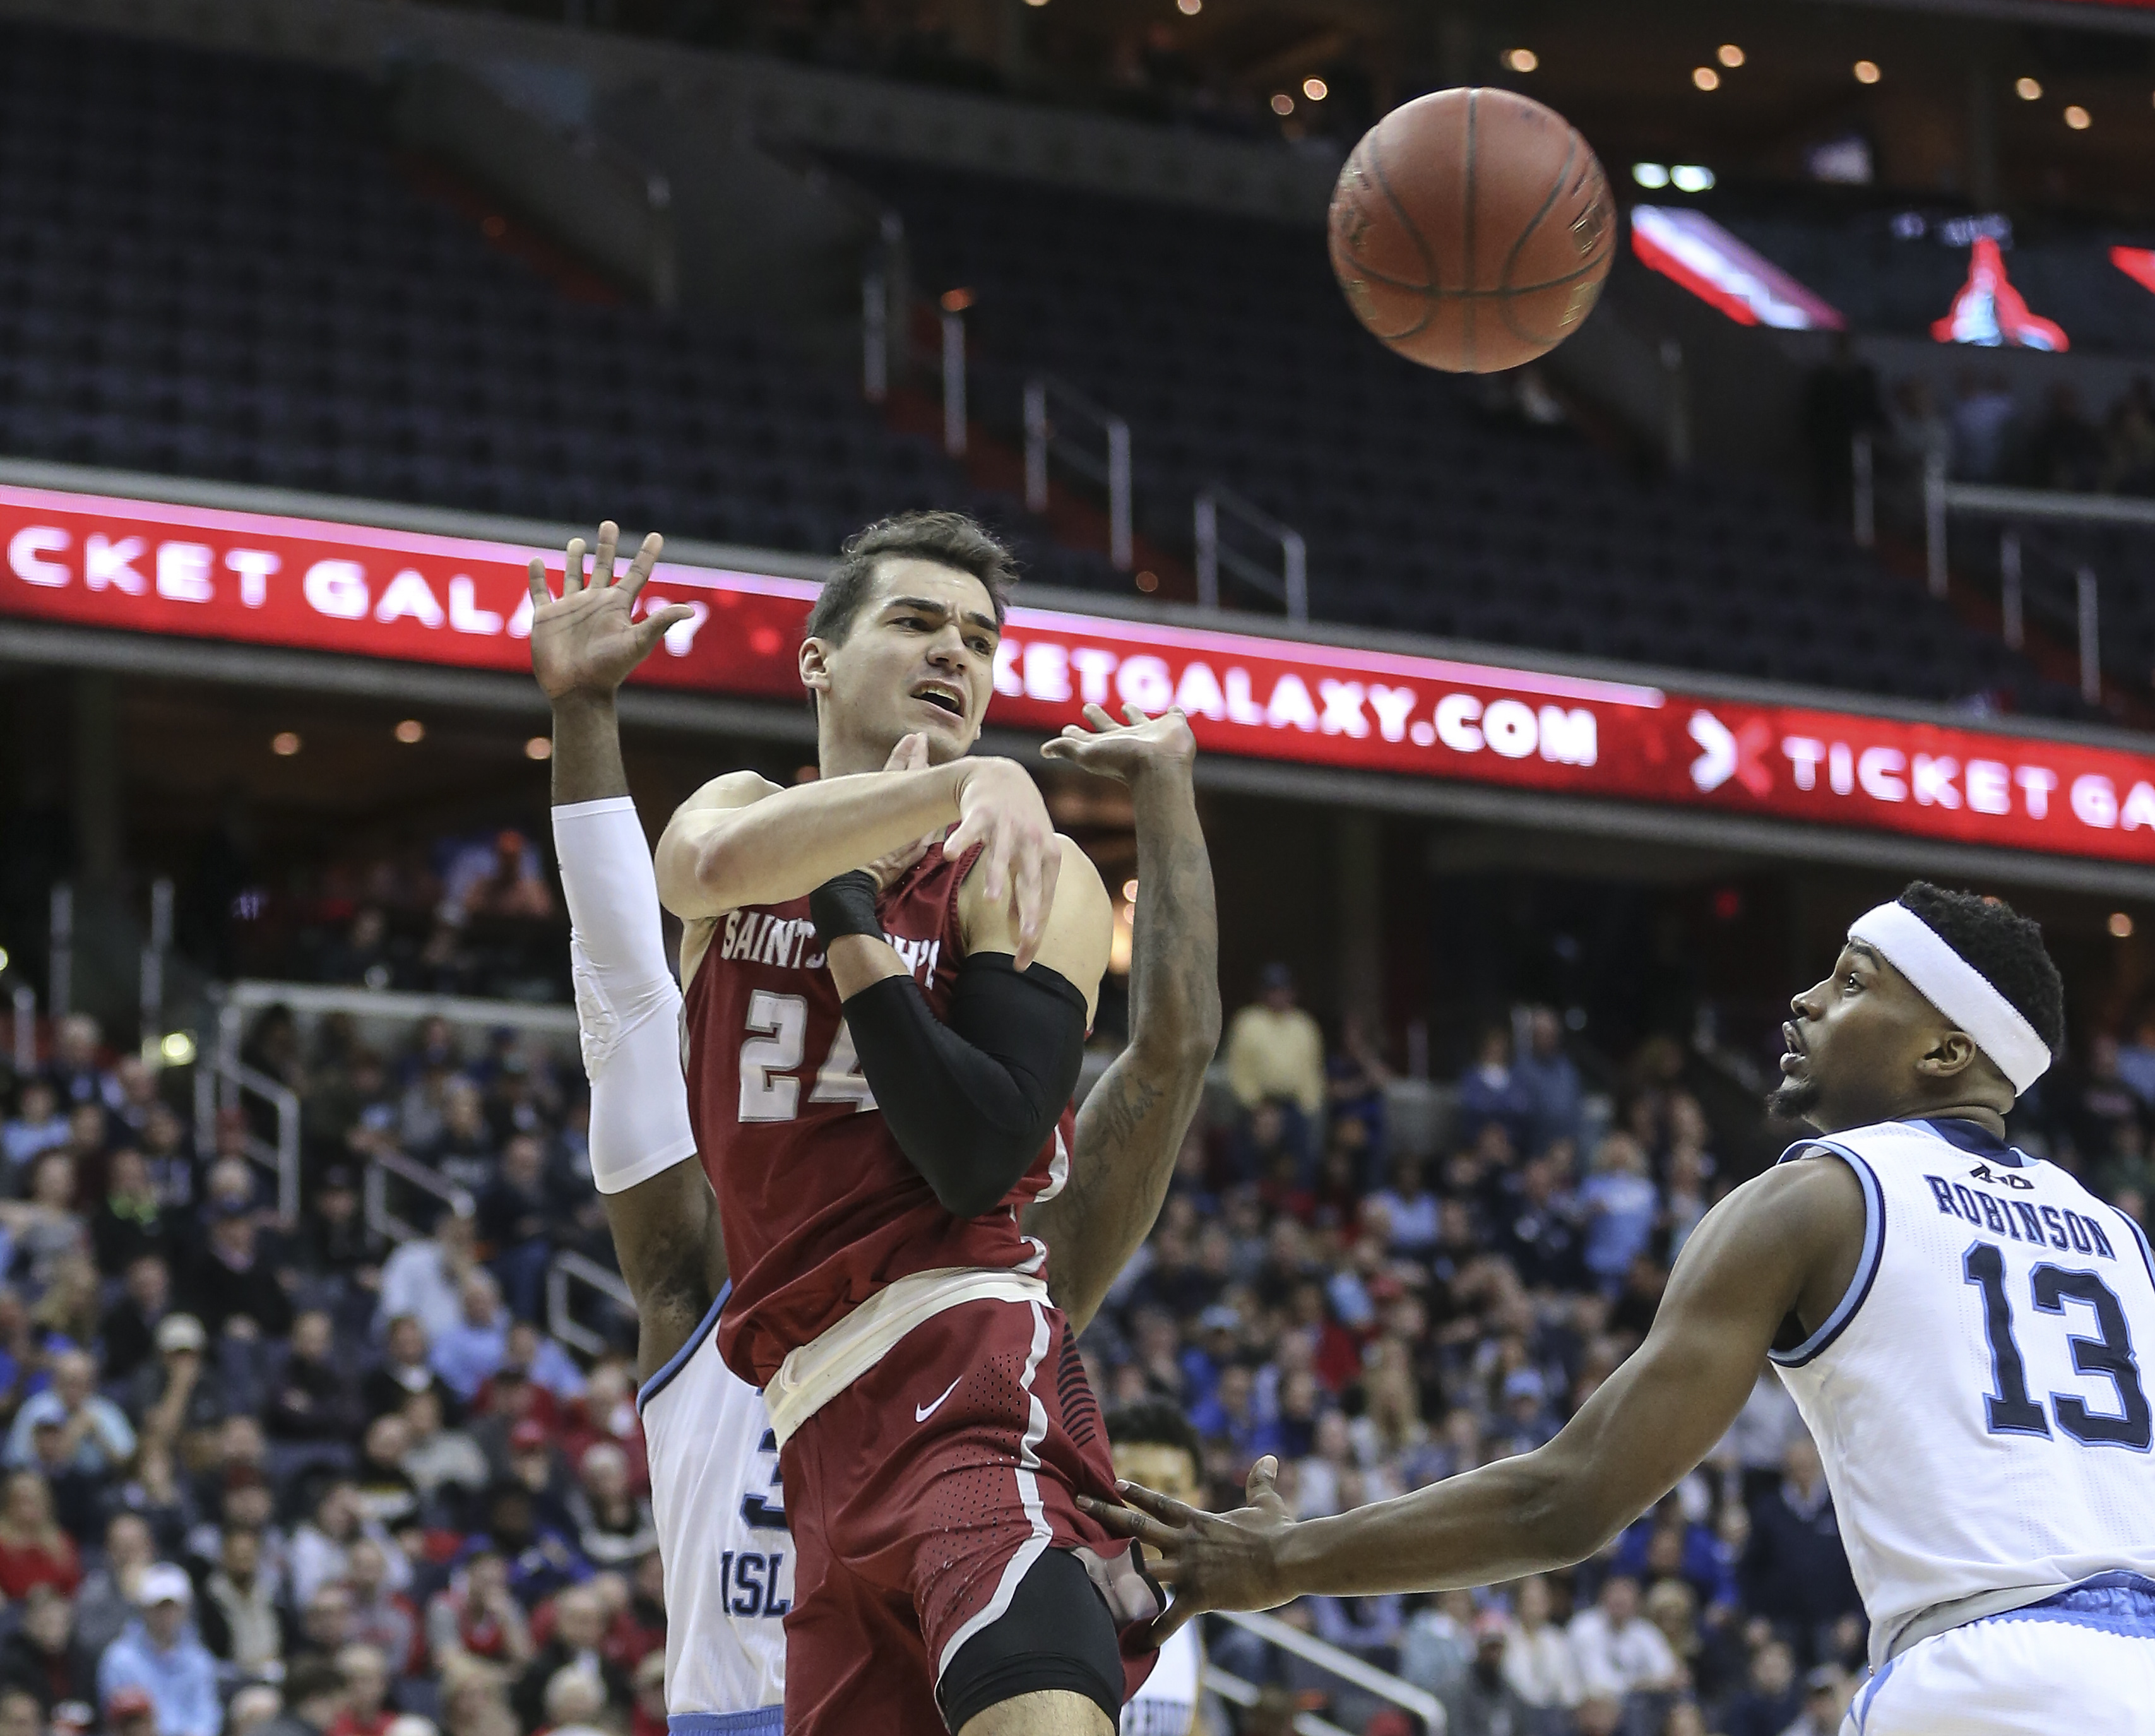 St. Joseph´s forward Pierfrancesco Oliva throws a pass over Rhode Island´s guard Stanford Robinson during the 2nd half of the A-10 tournament, semifinals, at the Capital One Arena, in Washington, DC, Saturday, March 10, 2018. Rhode Island beats St. Joes 90-87 to advance to the Finals. STEVEN M. FALK / Staff Photographer